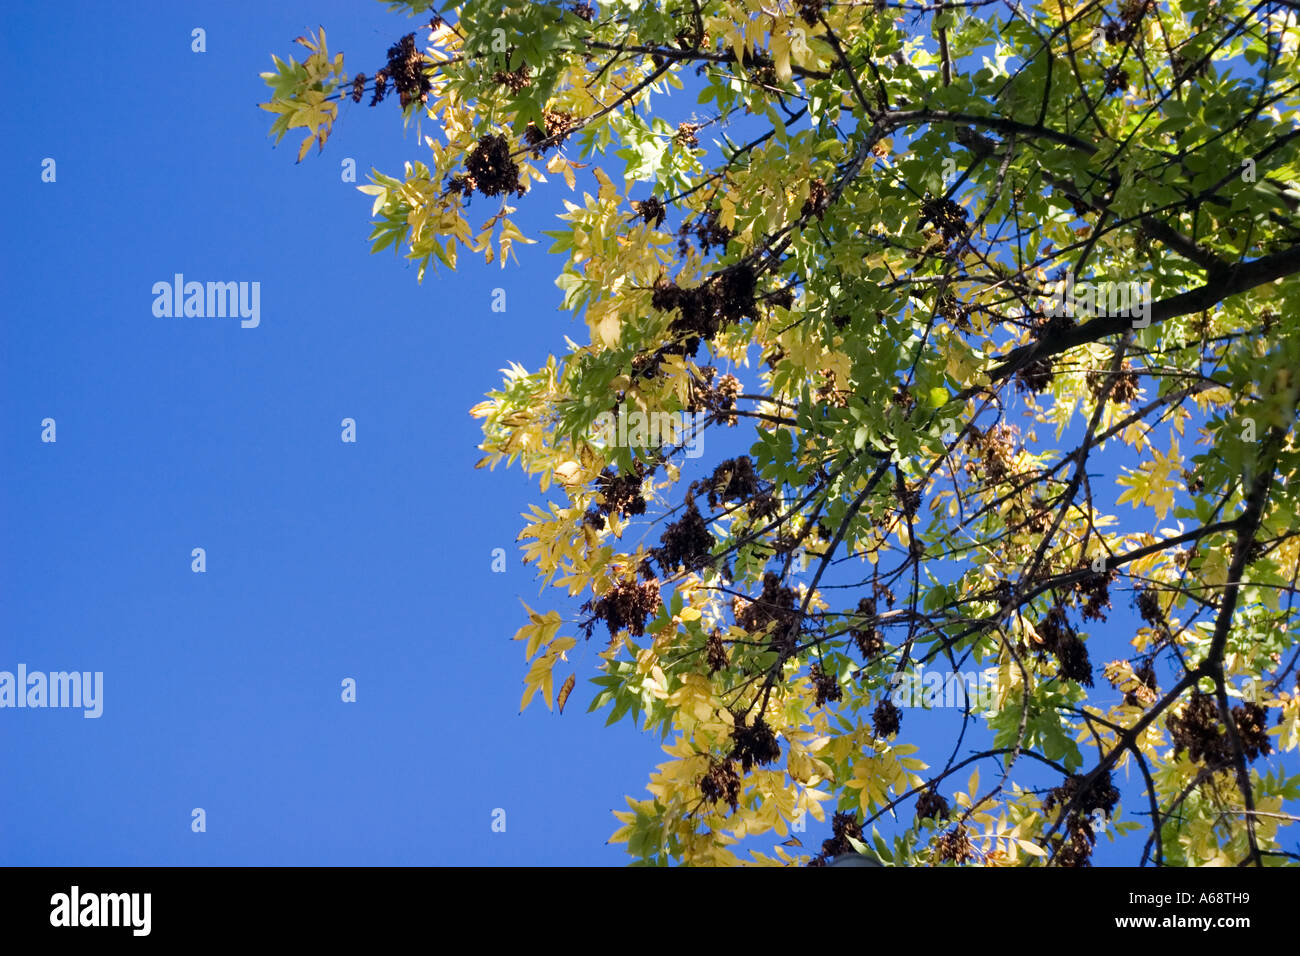 Green and yellow leaves of a tree against a bright blue sky Stock Photo